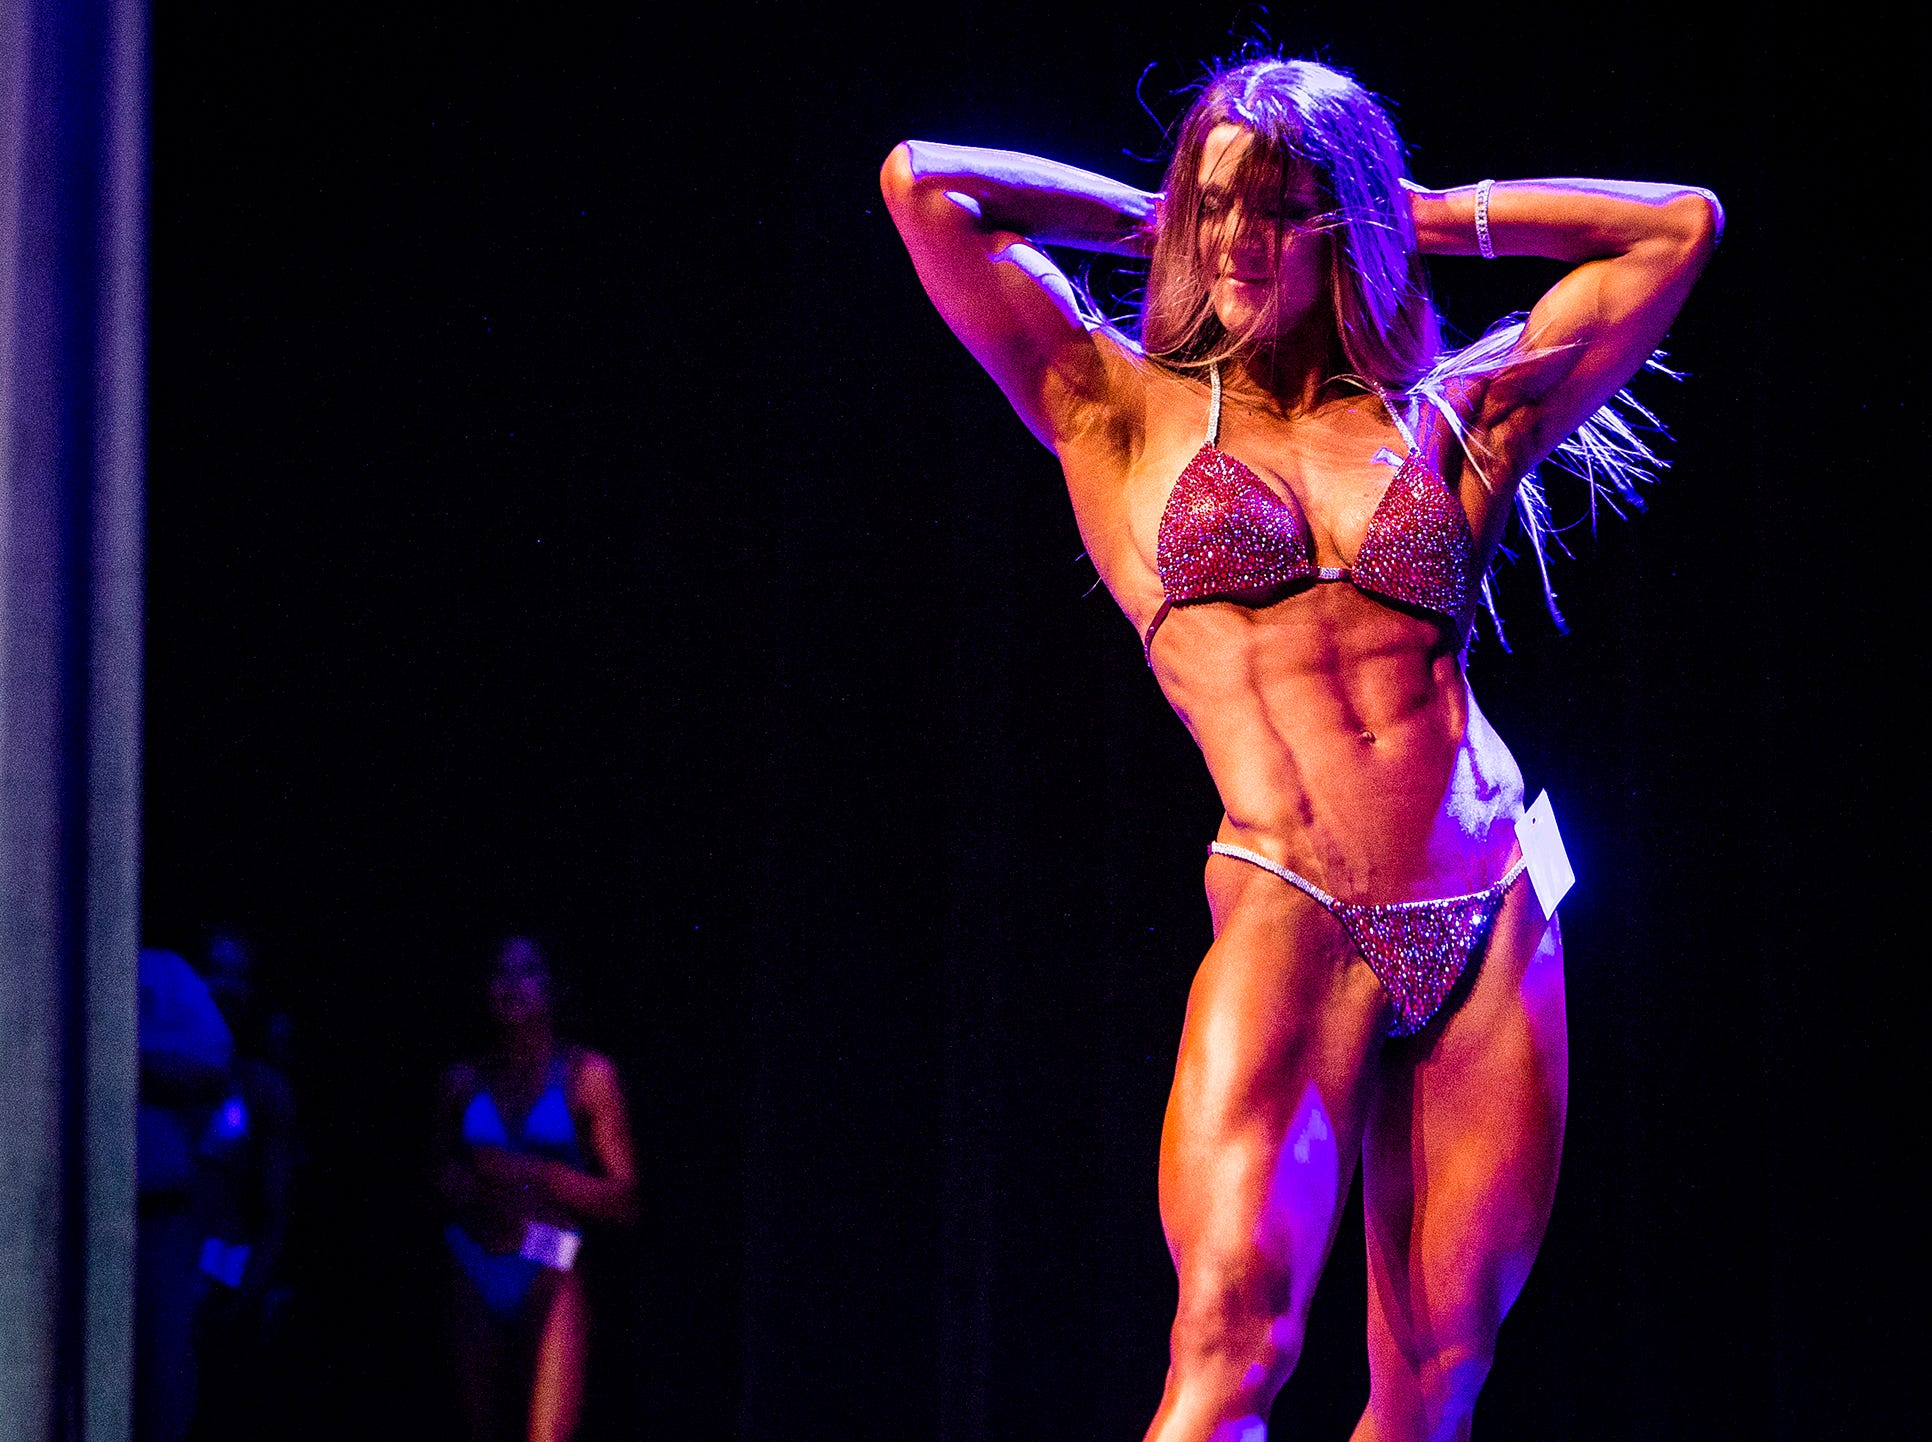 Ball State exercise science major Olivia Mason competes in the 2019 Mr. And Ms. Ball State bodybuilding competition. Mason, who has been lifting weights for just over a year, was awarded Ms. Ball State.